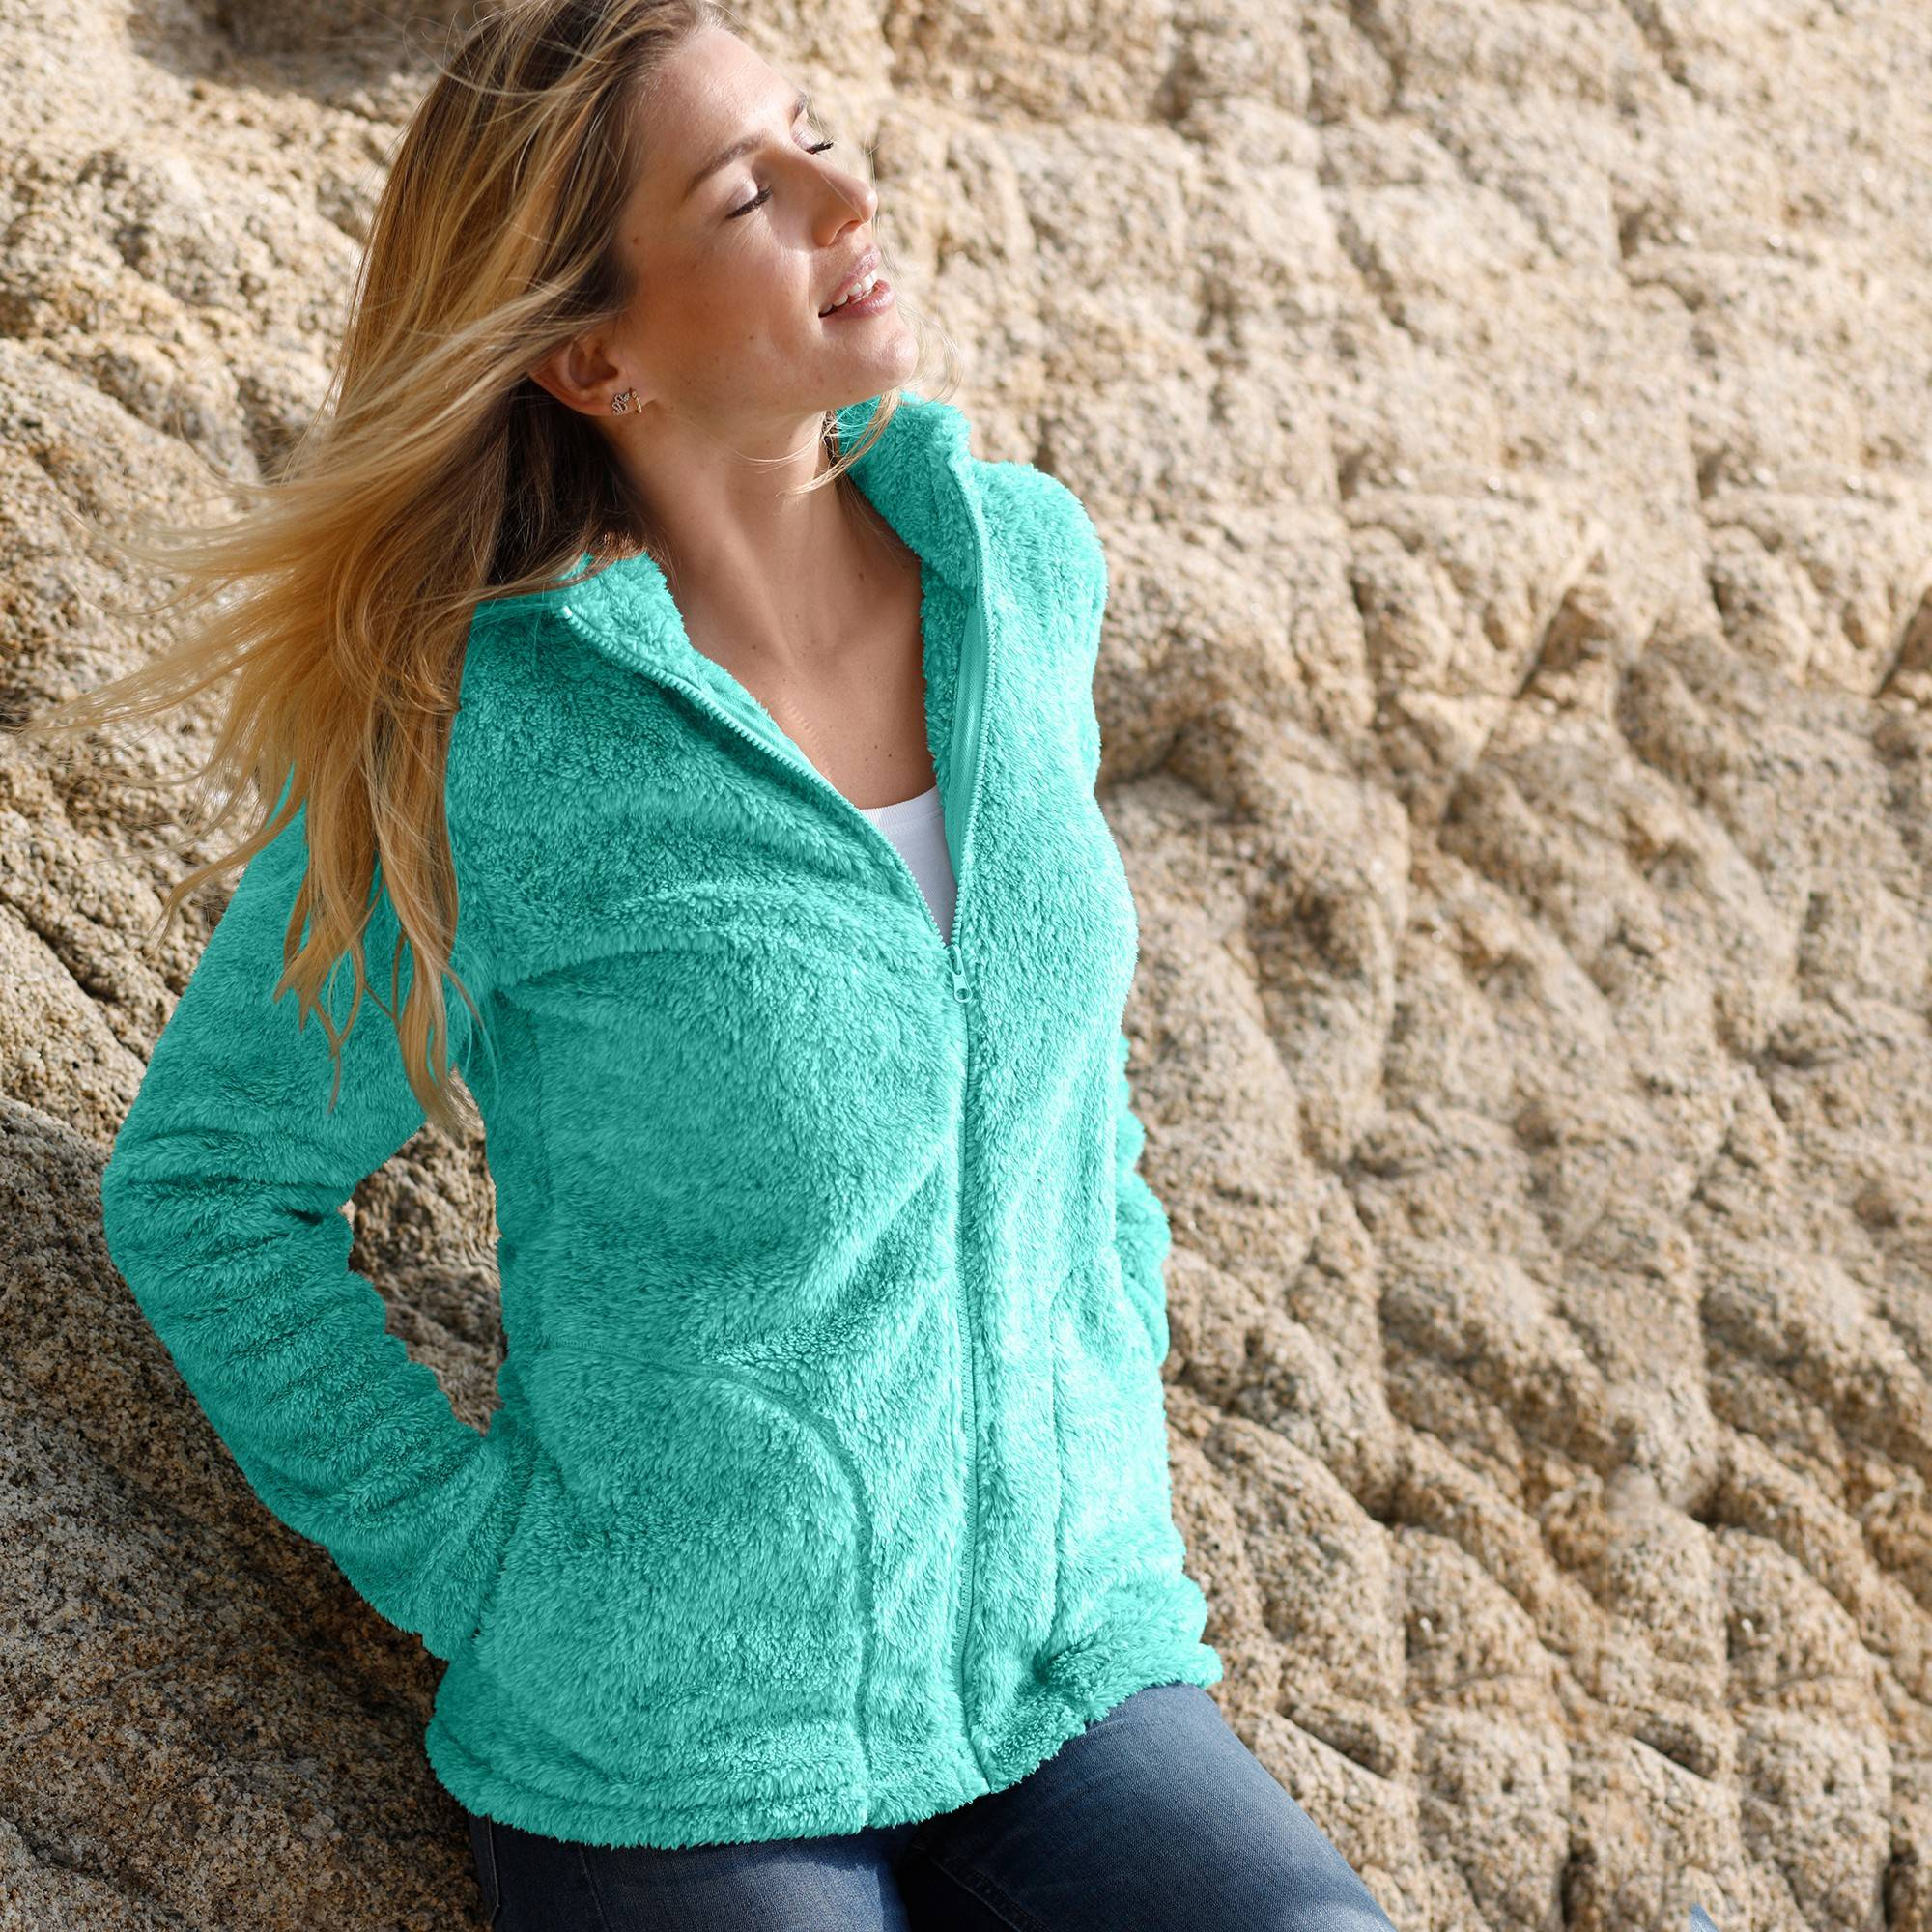 Casual Collection Veste maille peluche - Turquoise - Taille : 46,48 - Blancheporte